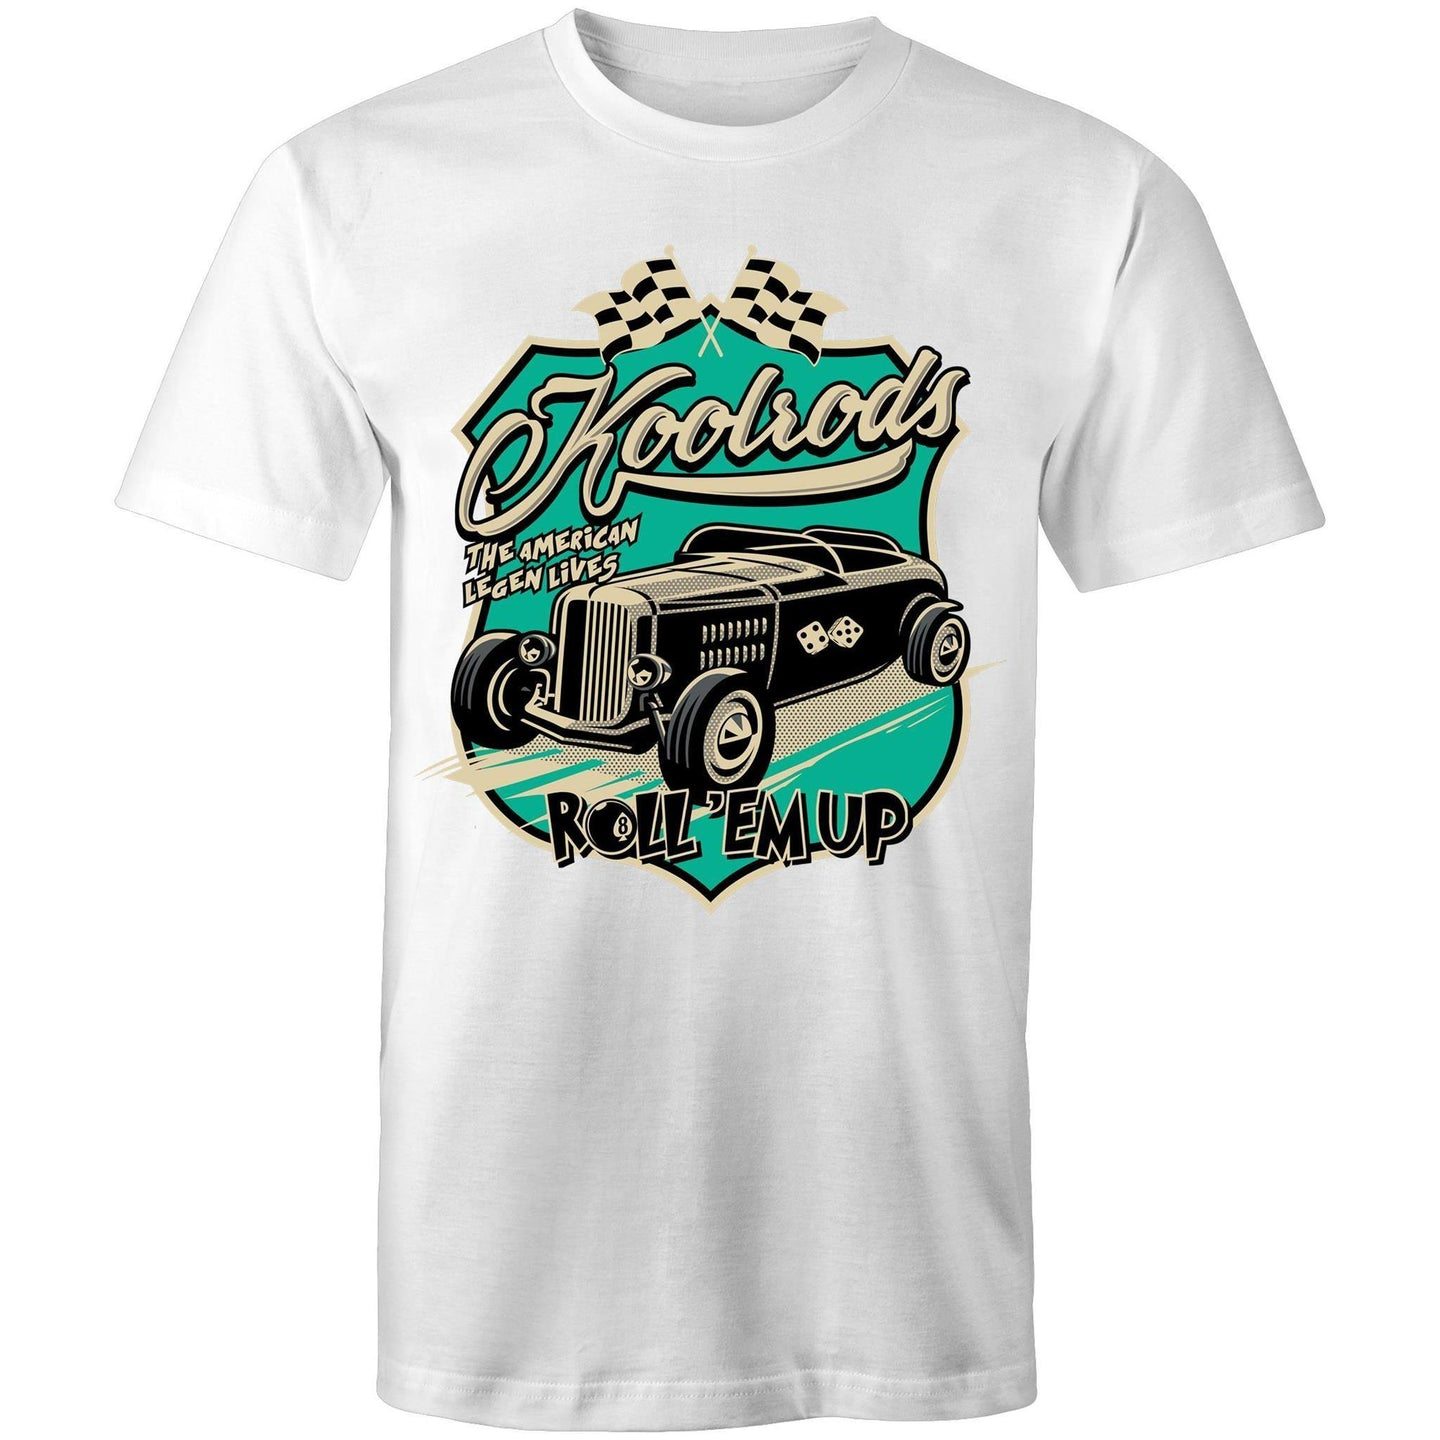 KOOLRODS TURQUOISE - Mens T-Shirt S-5XL